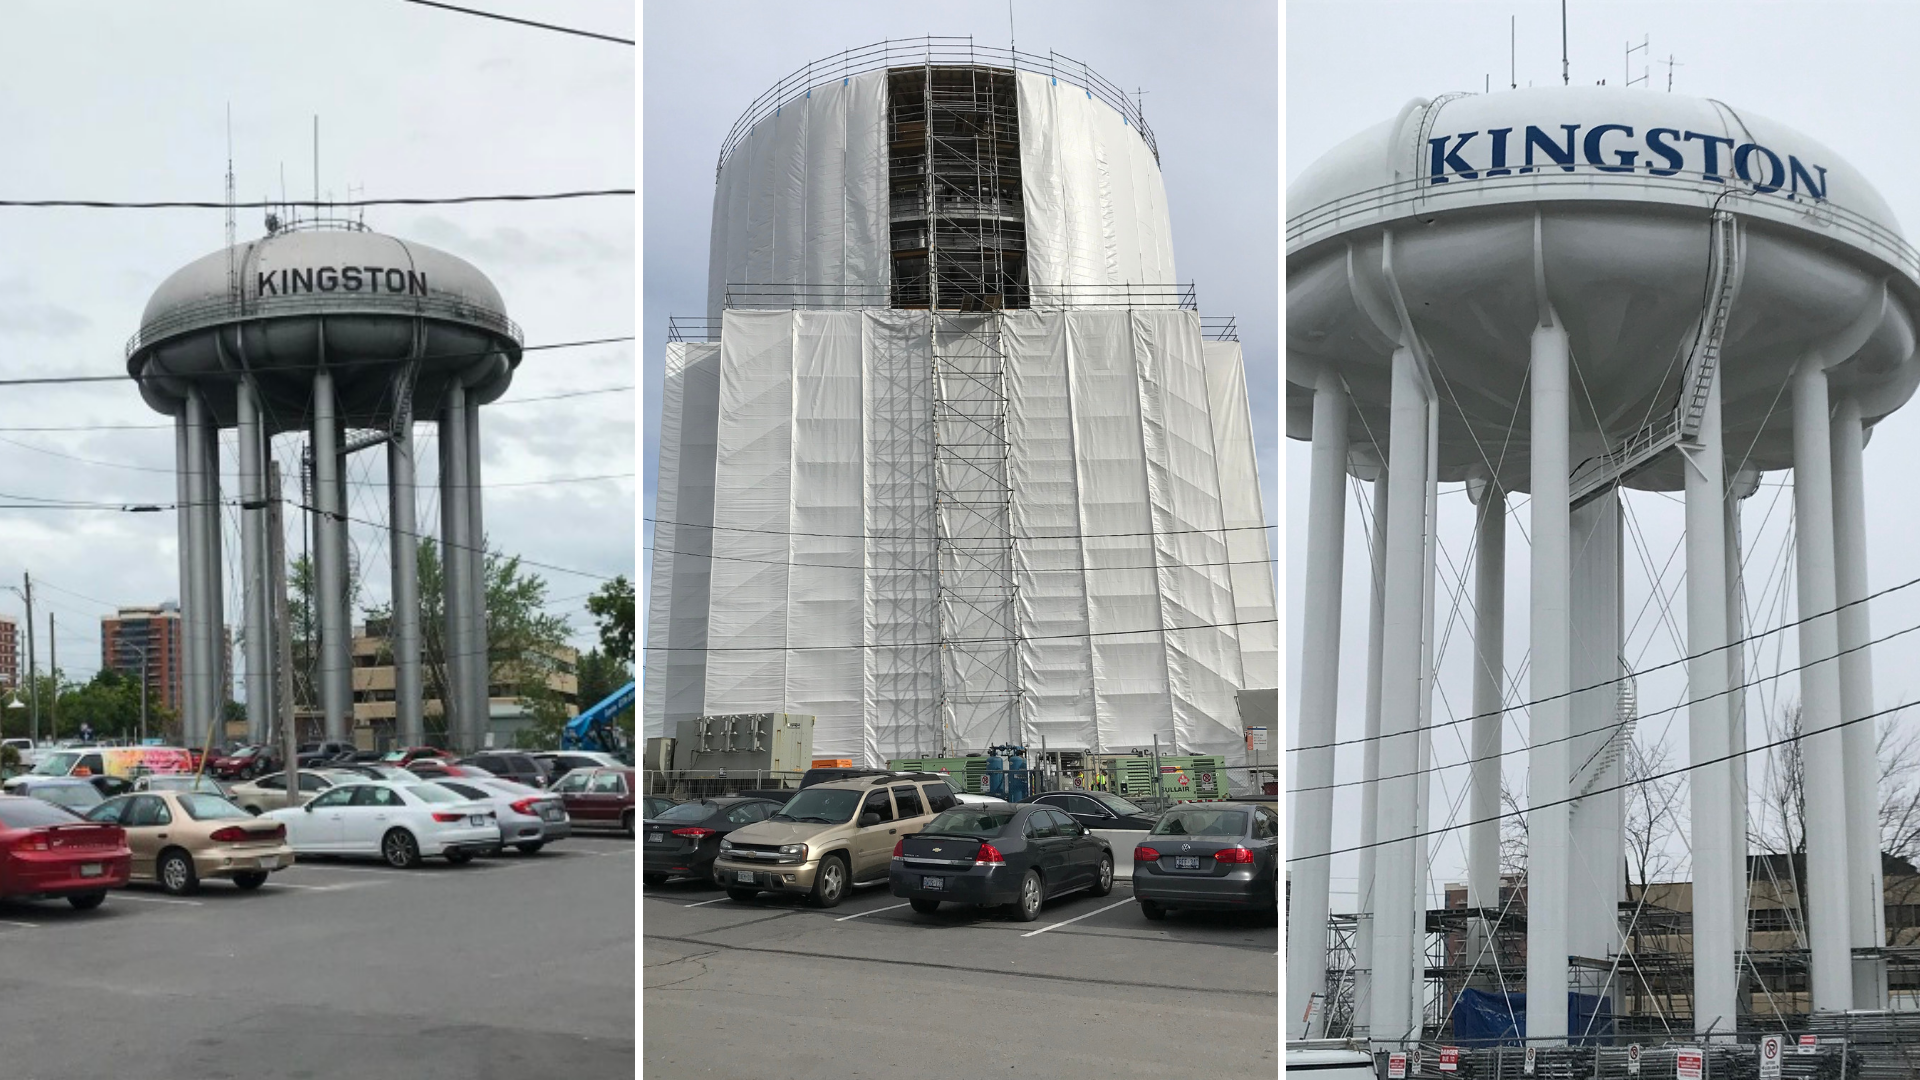 Photos show the facility before, during and after construction